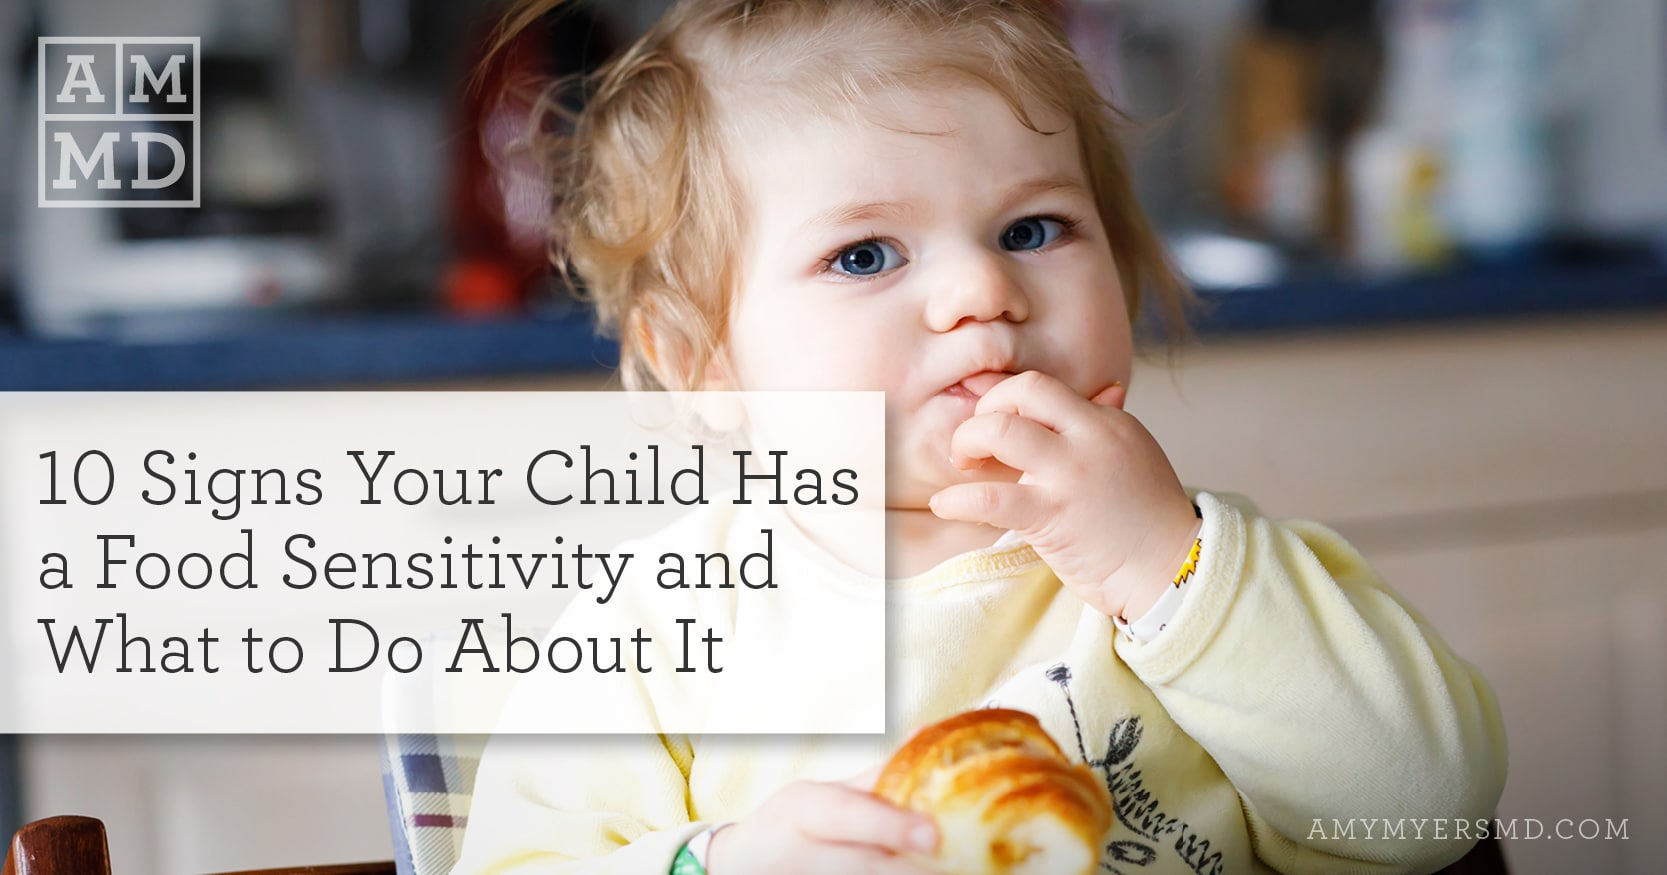 Signs Your Child Has a Food Sensitivity and What to Do About It - Featured Image - Amy Myers MD